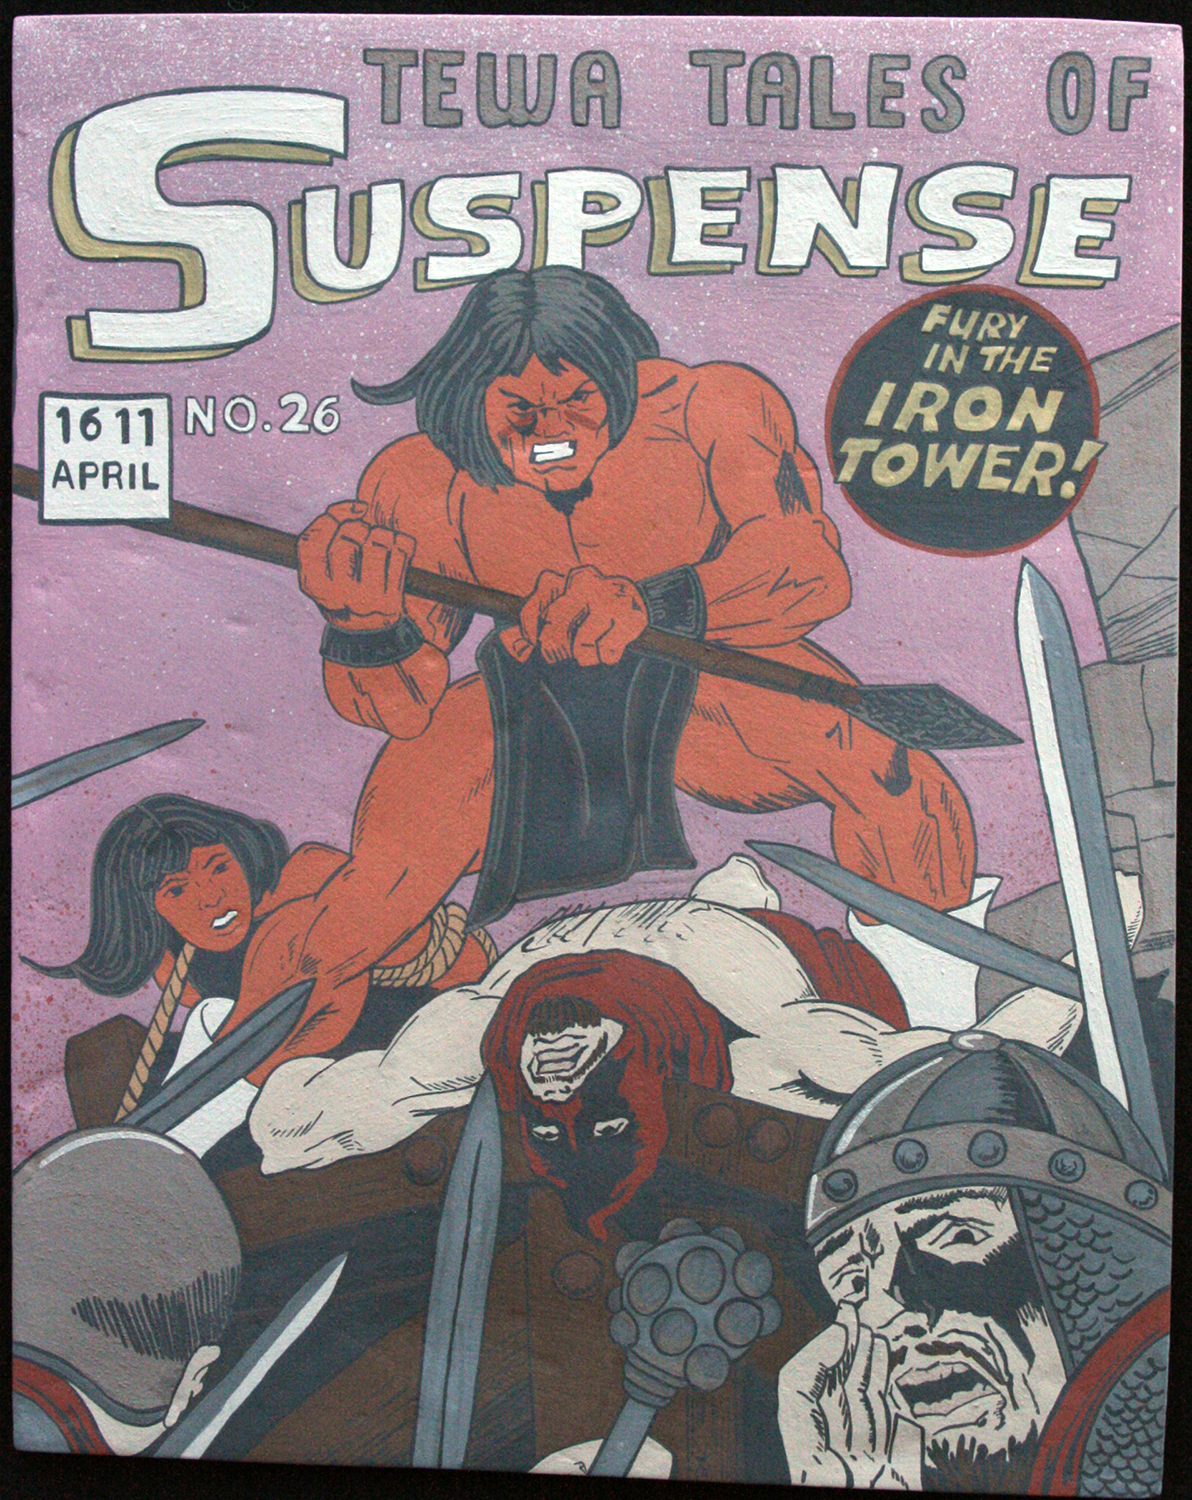 TEWA TALES OF SUSPENSE #26 'FURY IN THE IRON TOWER!'